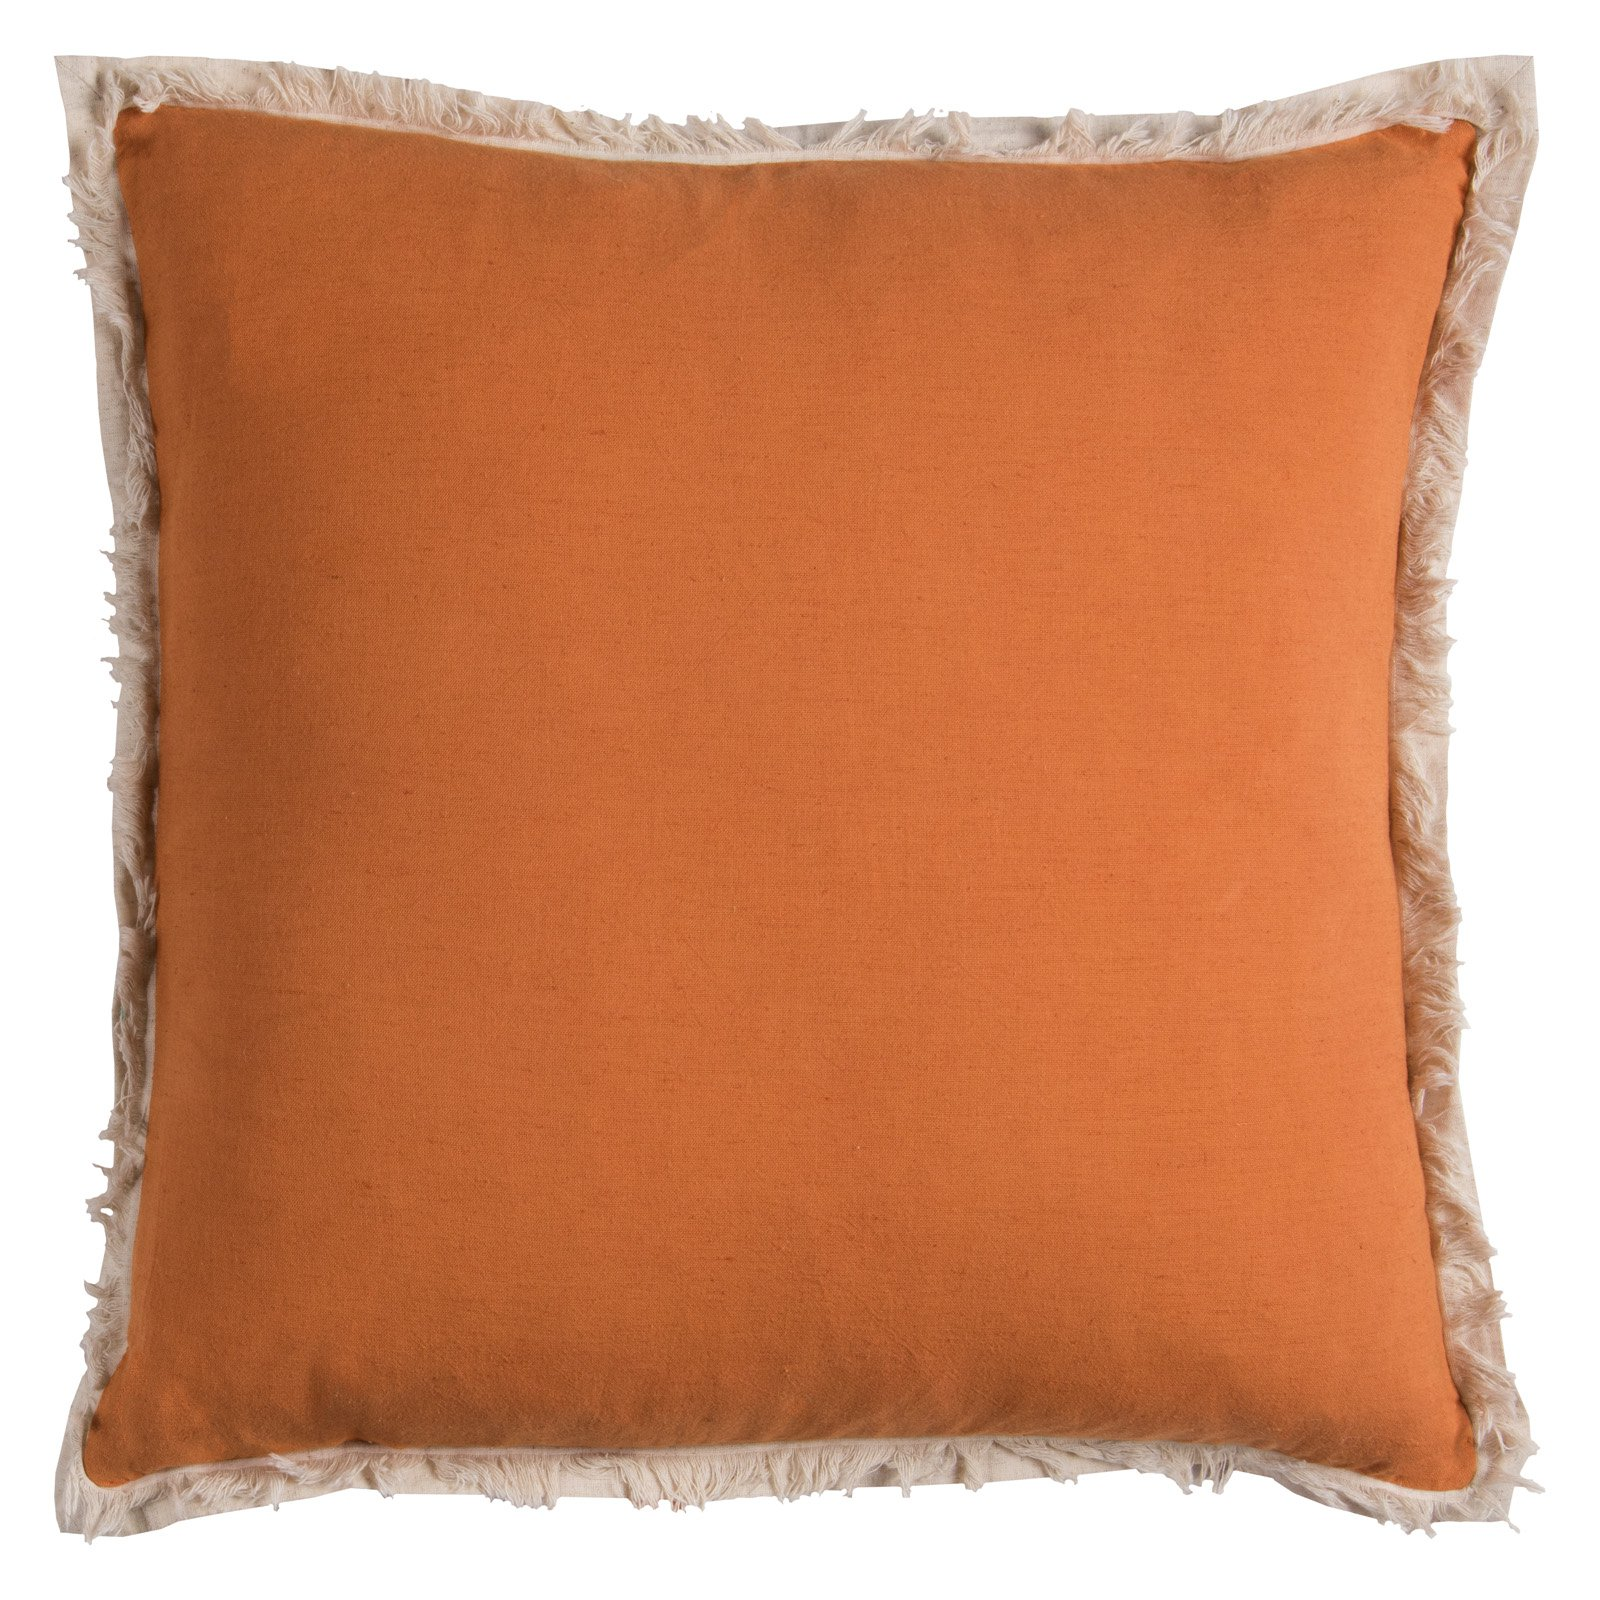 "Rizzy Home Solid Poly Filled Decorative Throw Pillow, 20"" x 20"", Orange"